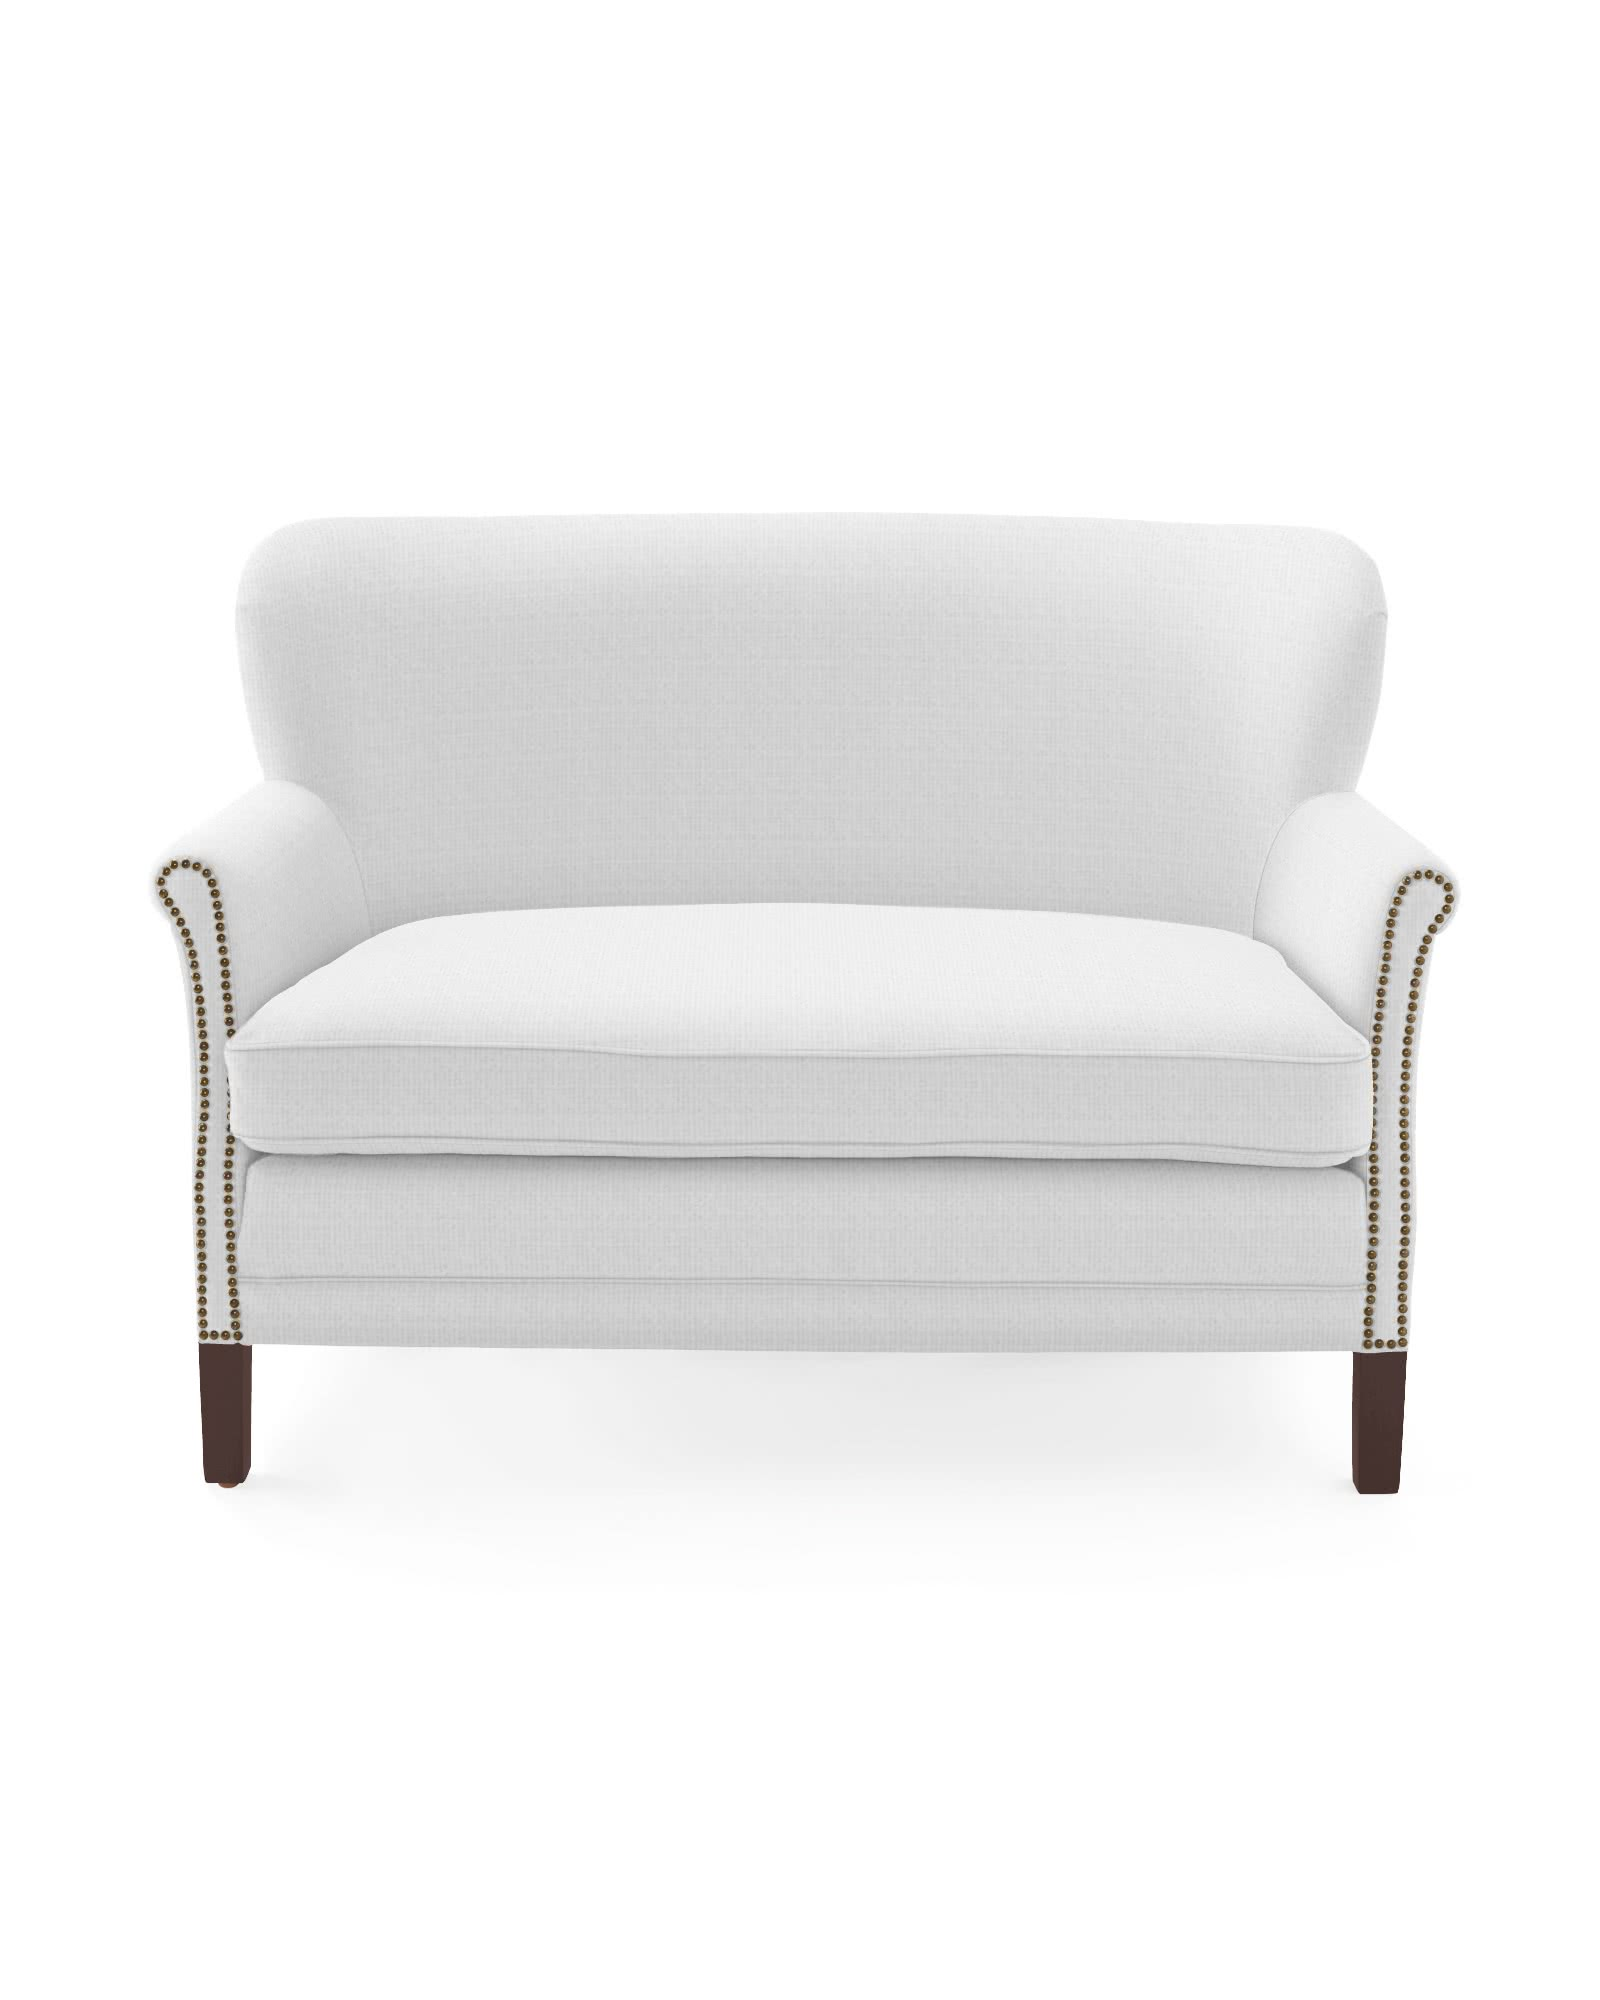 Belgian Club Loveseat with Nailheads,